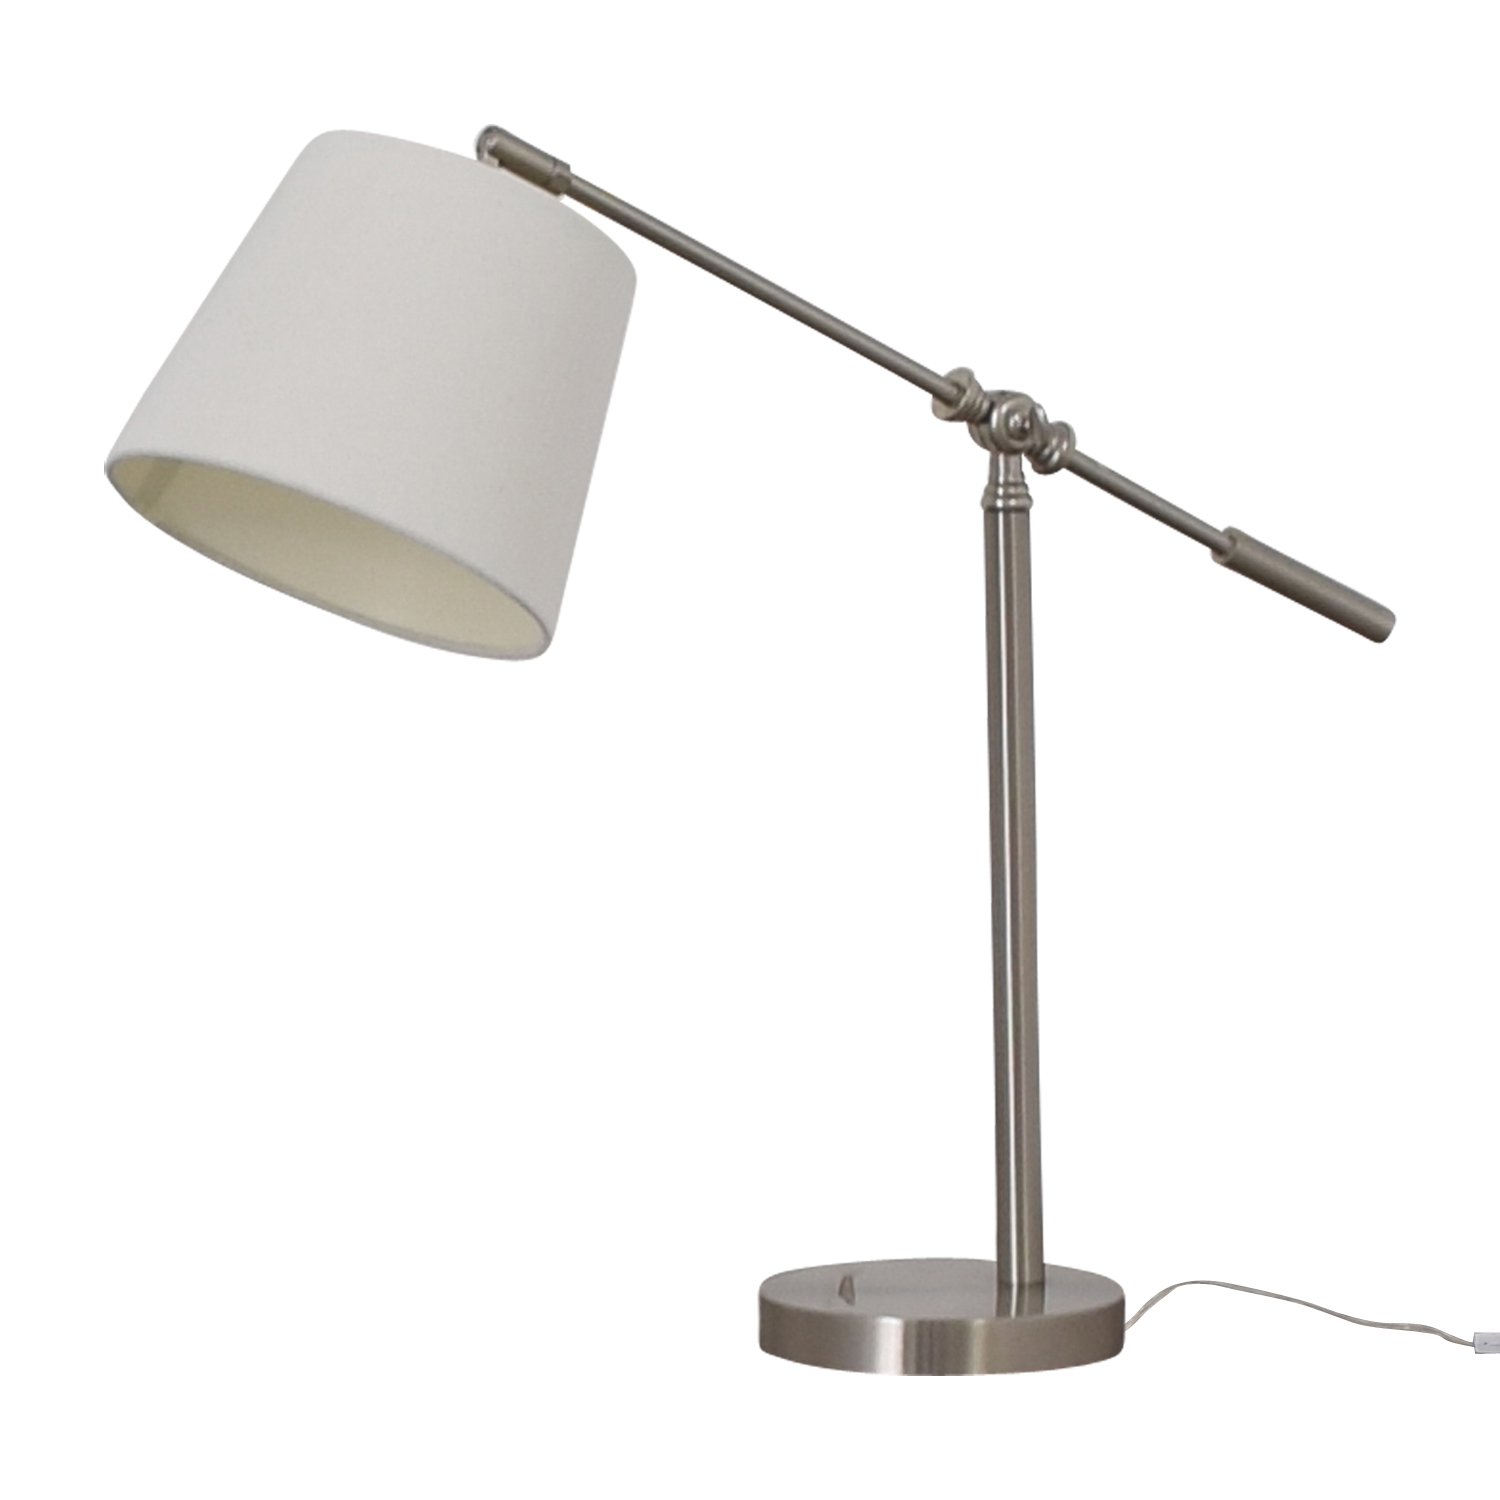 buy Wayfair Sarina Chrome Desk Lamp Wayfair